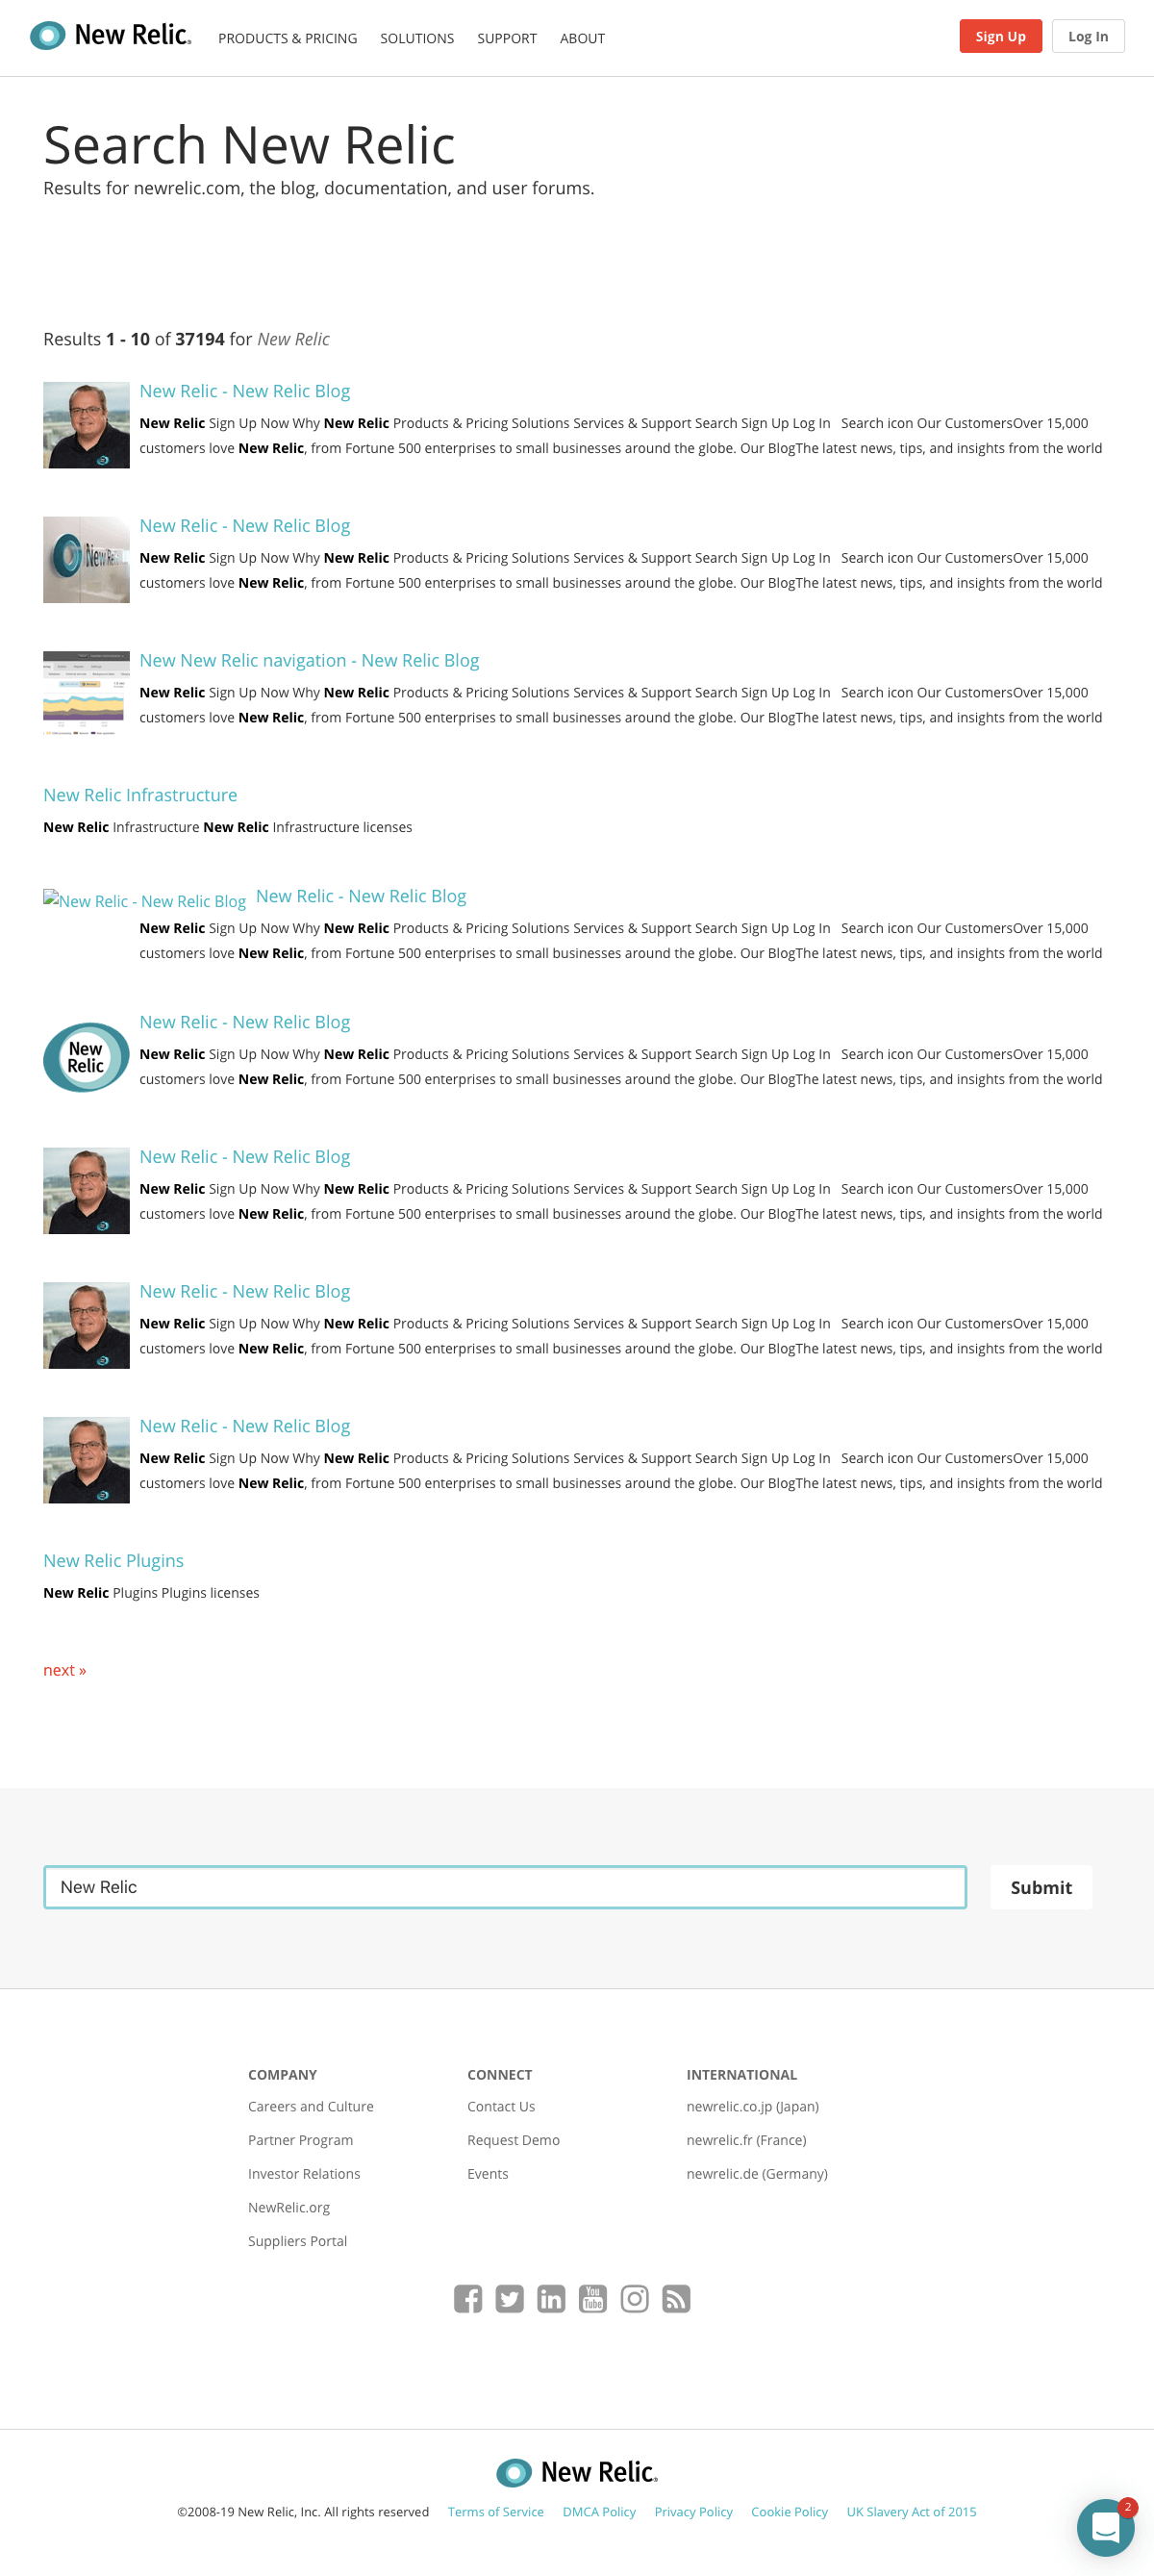 New Relic - Search results page